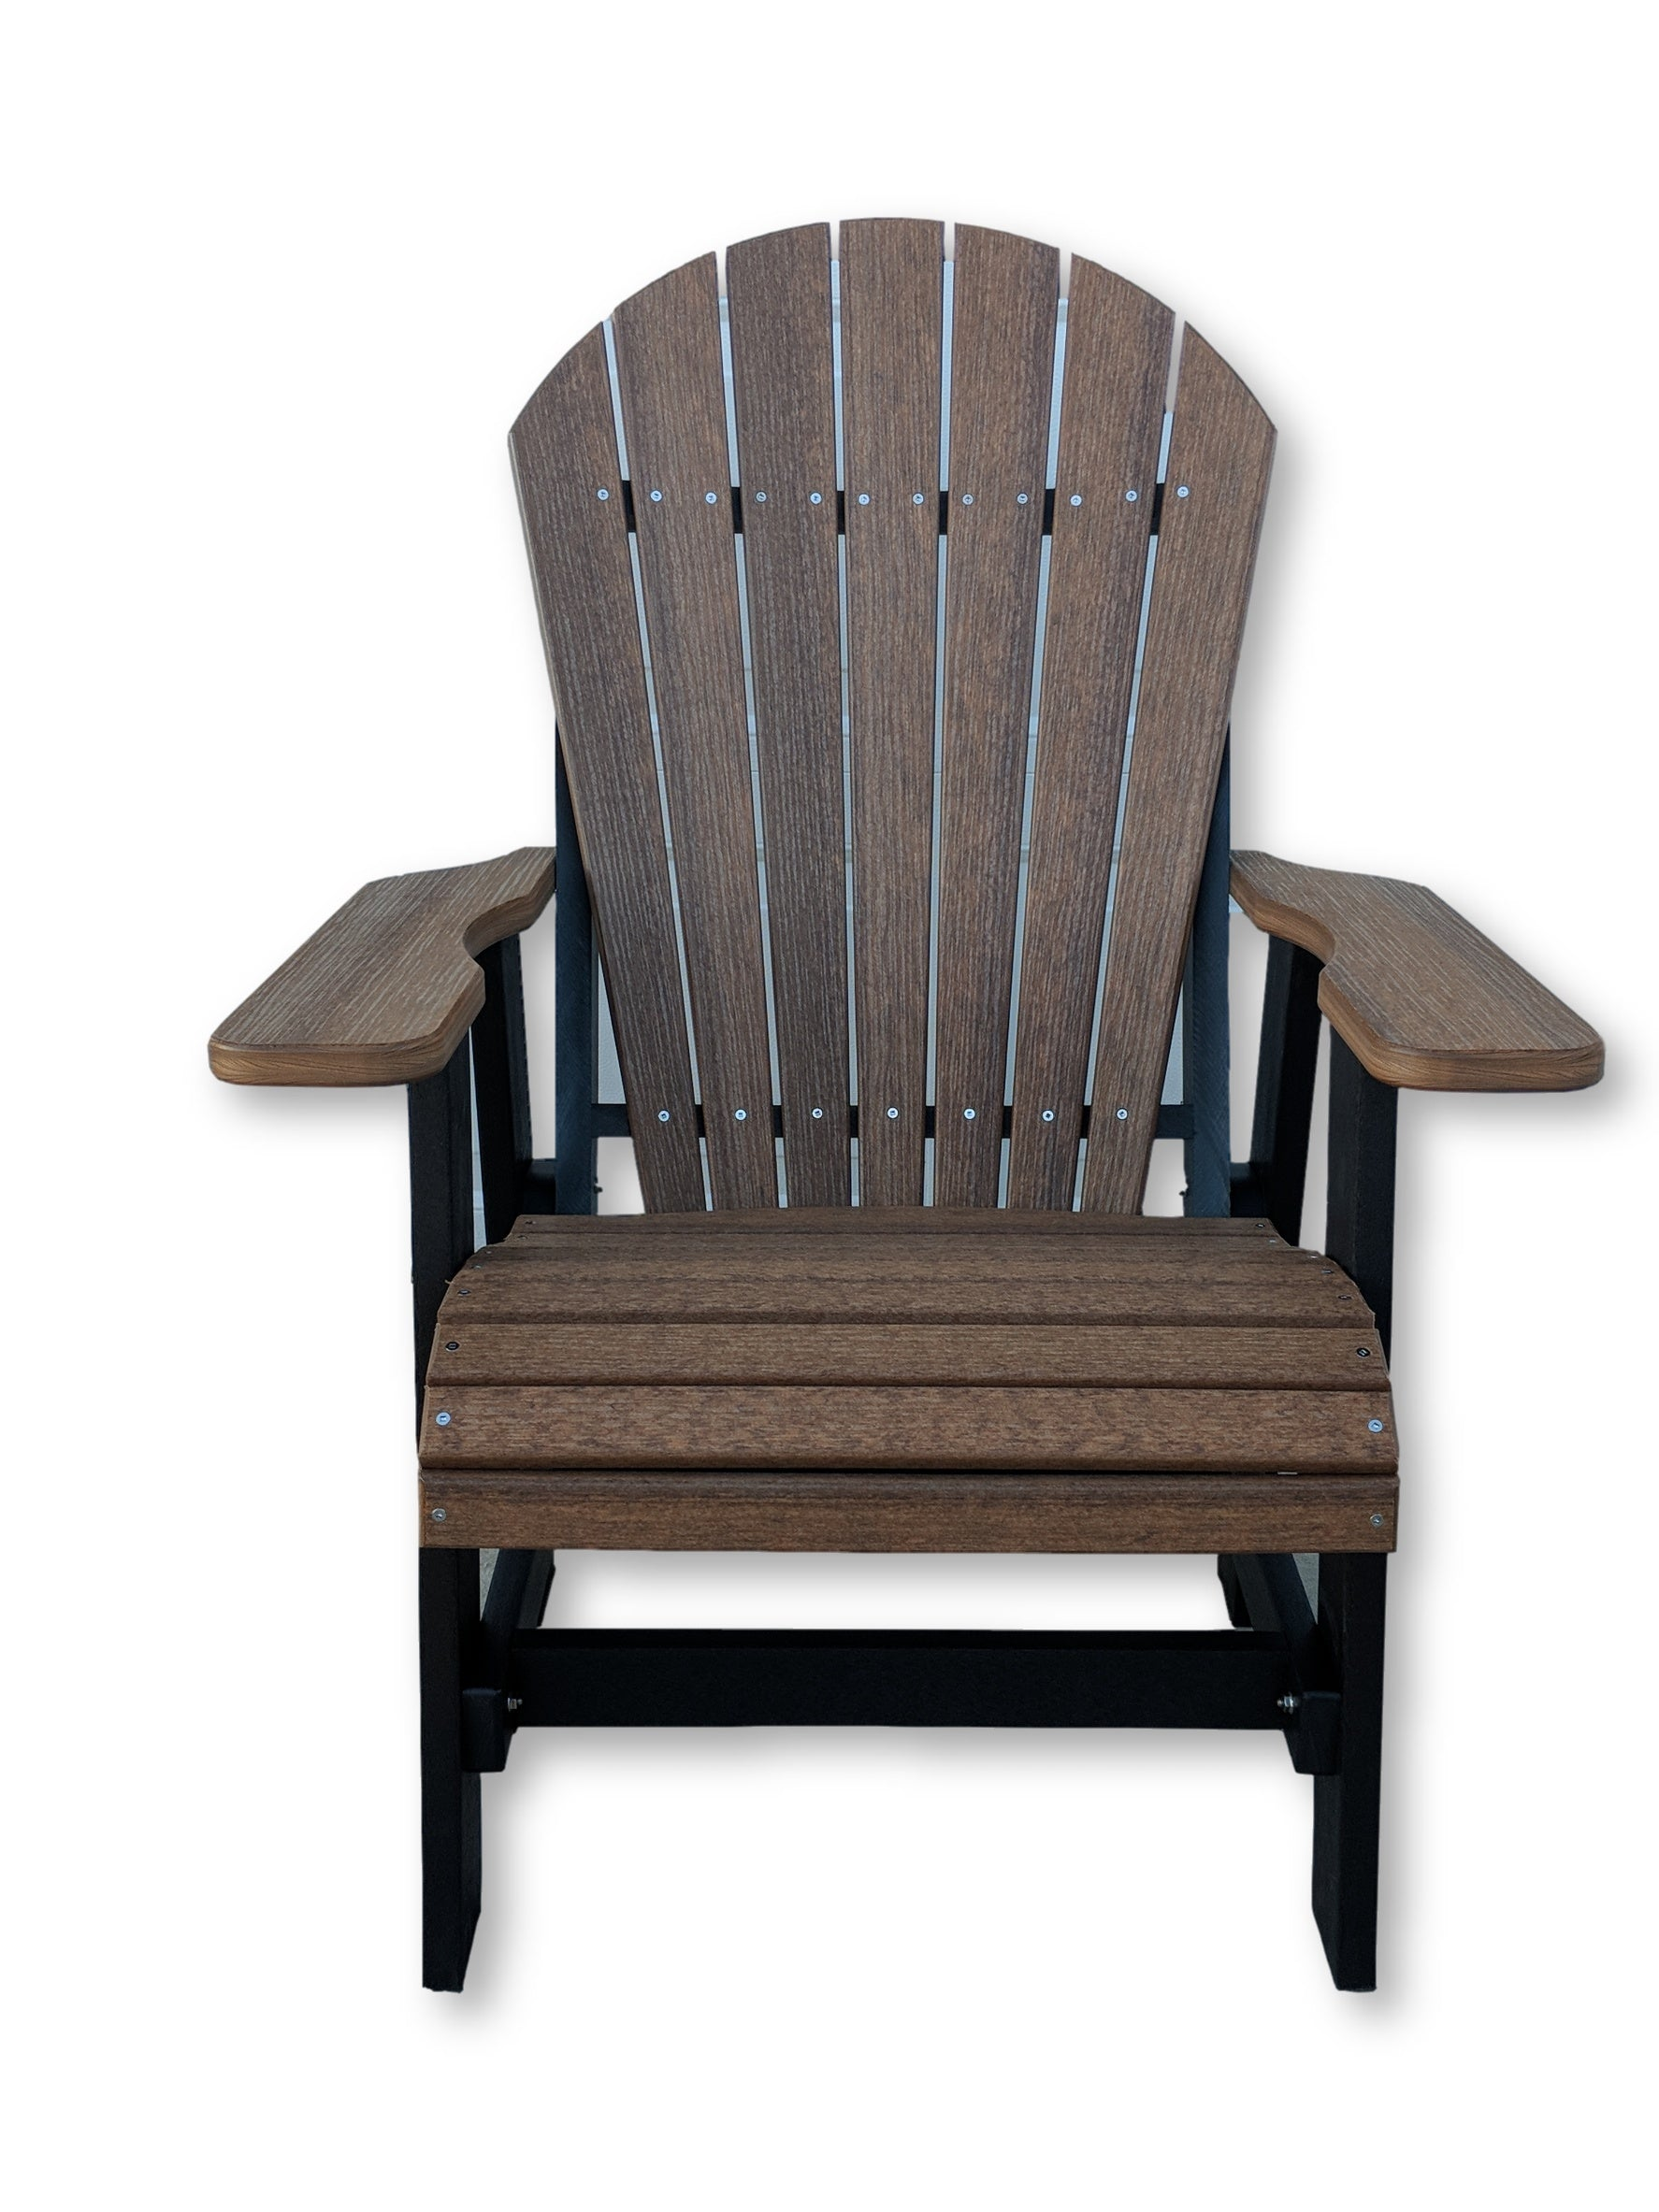 Antique Mahogany Black Folding Adirondack Chair No Cup Holders All Weather Furniture Store